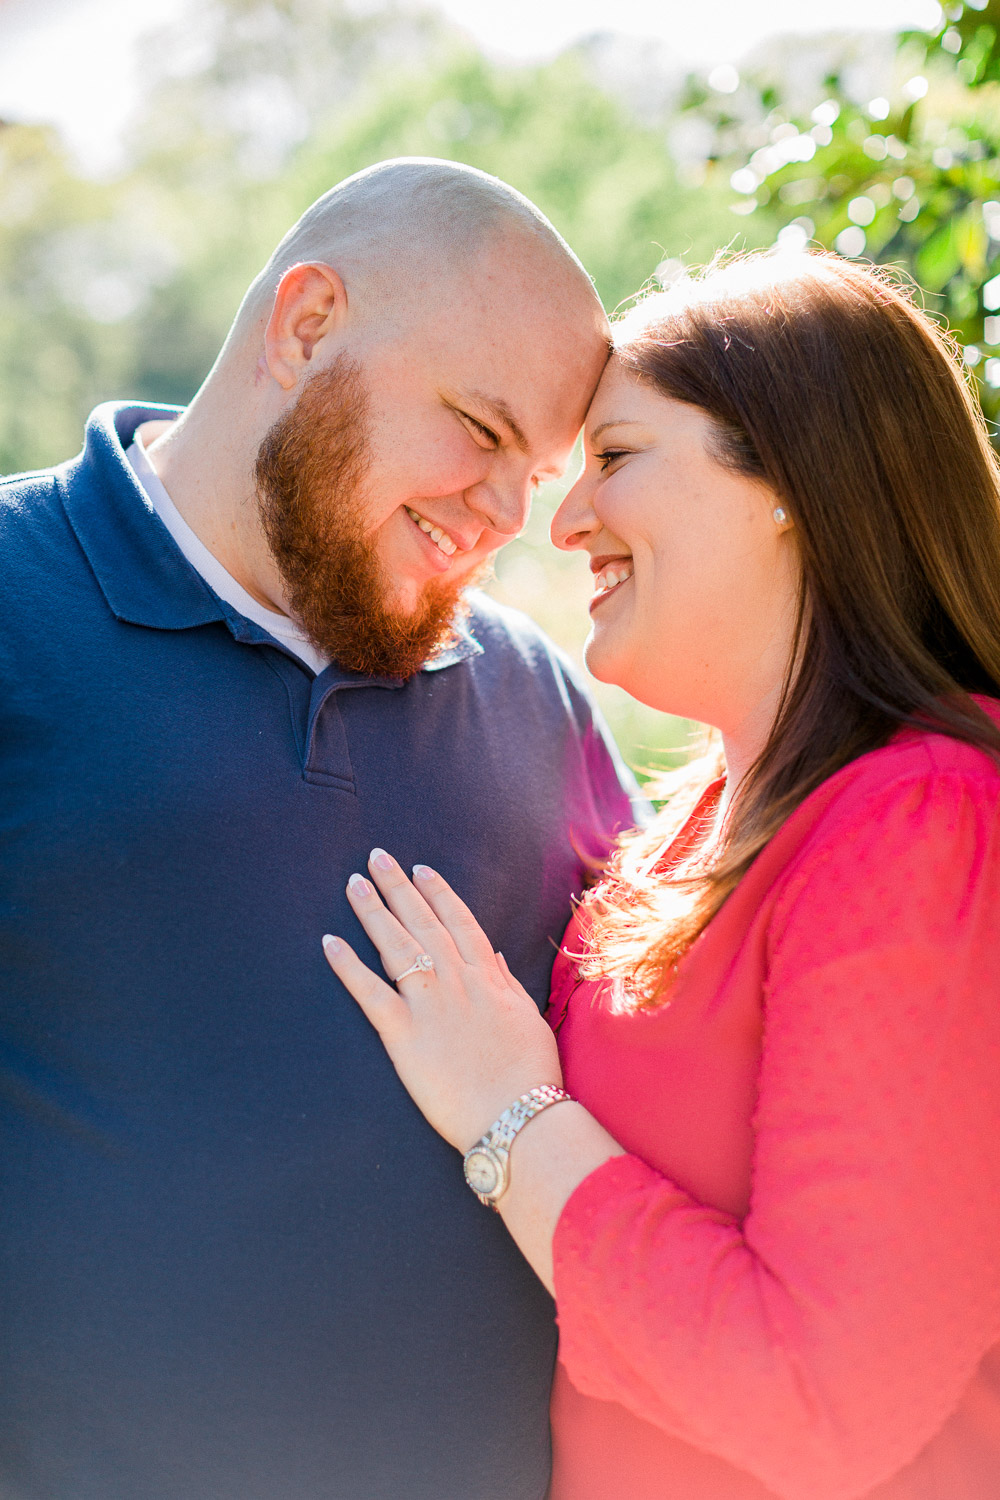 spring engagement session at wral azalea garden by rachael bowman photography